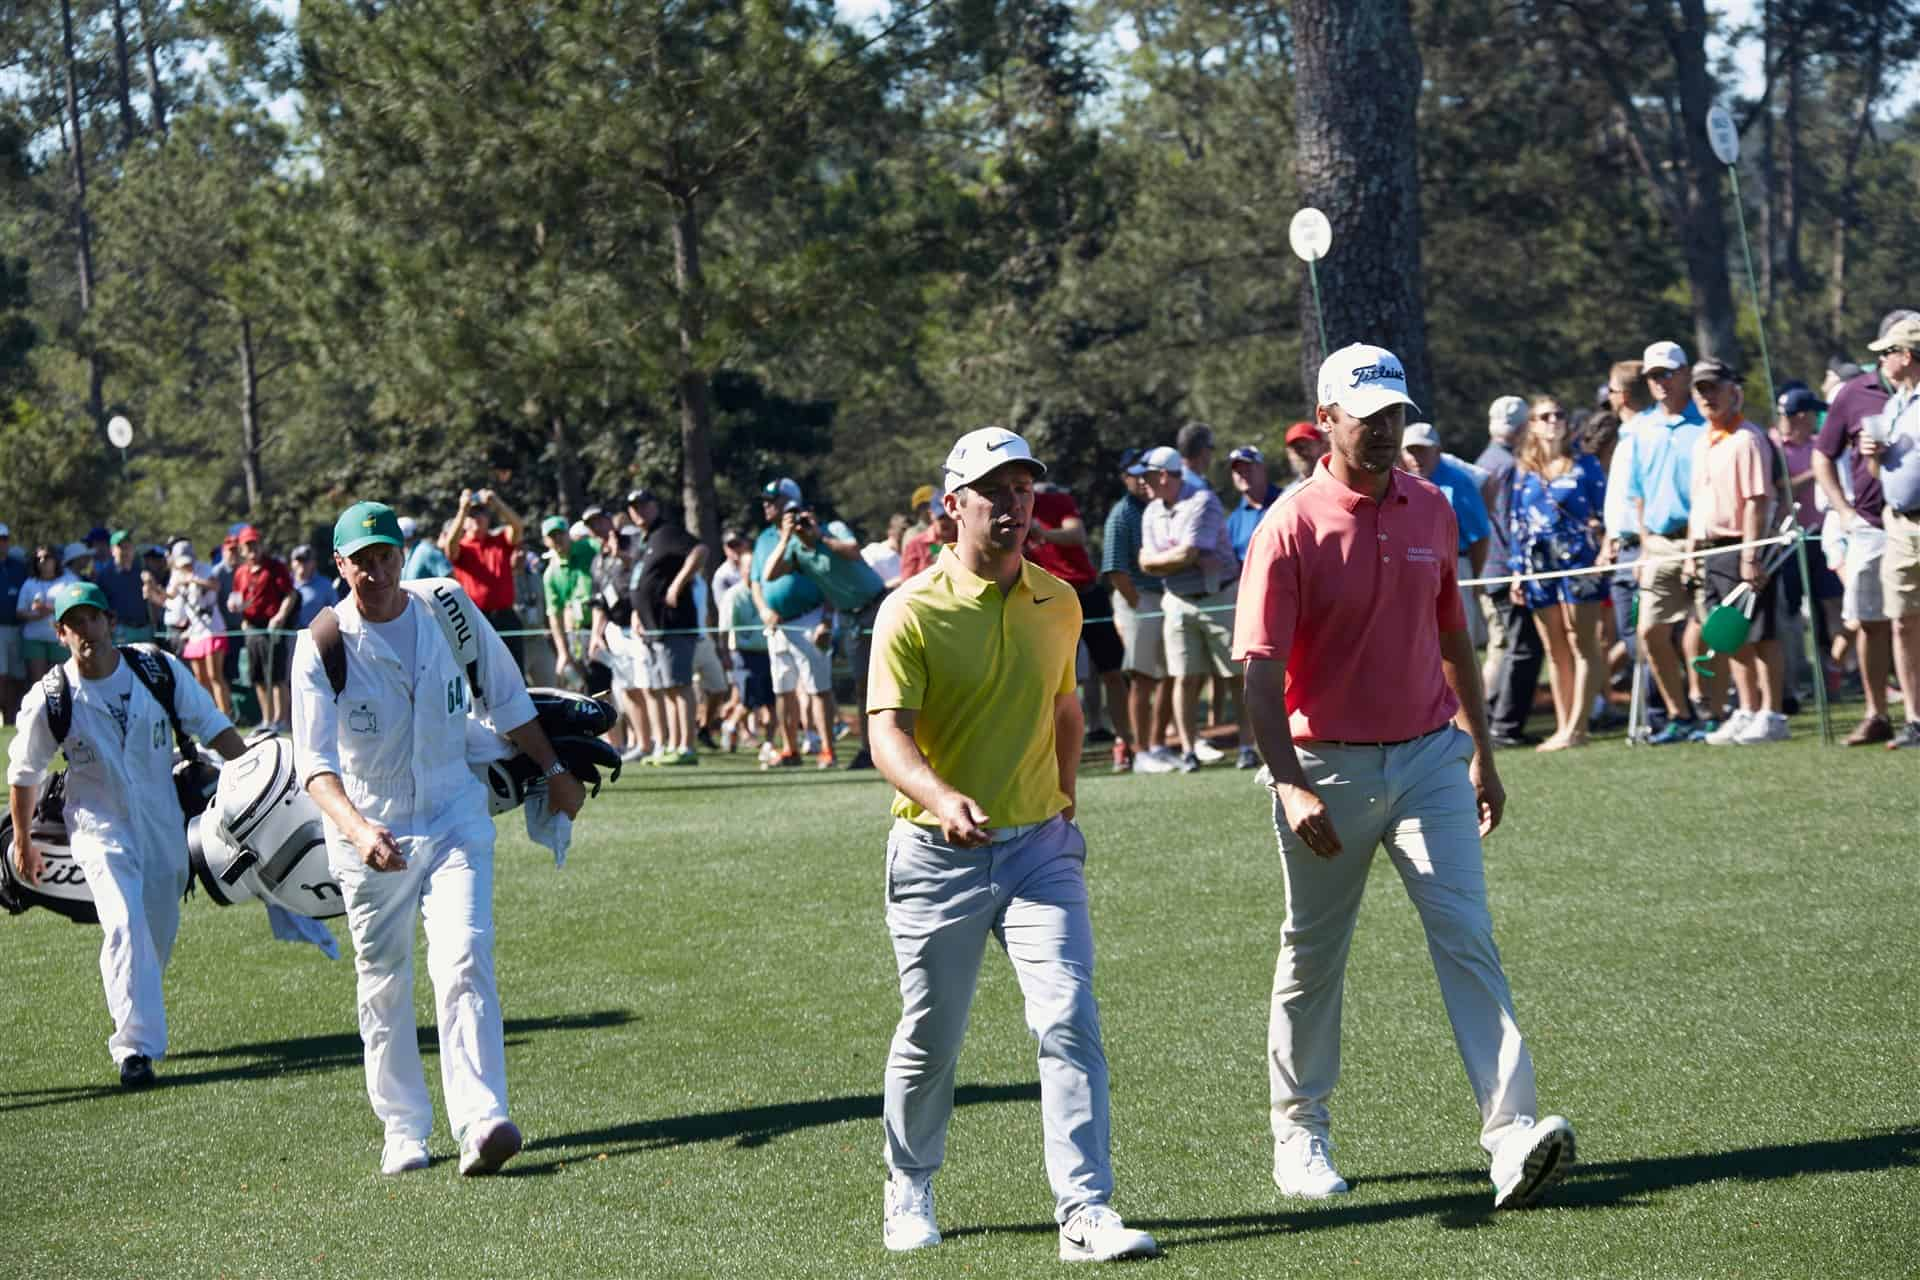 Two golf pros at The Masters practice round walk together along the fairway with their caddies trailing and spectators in the background at Augusta National.